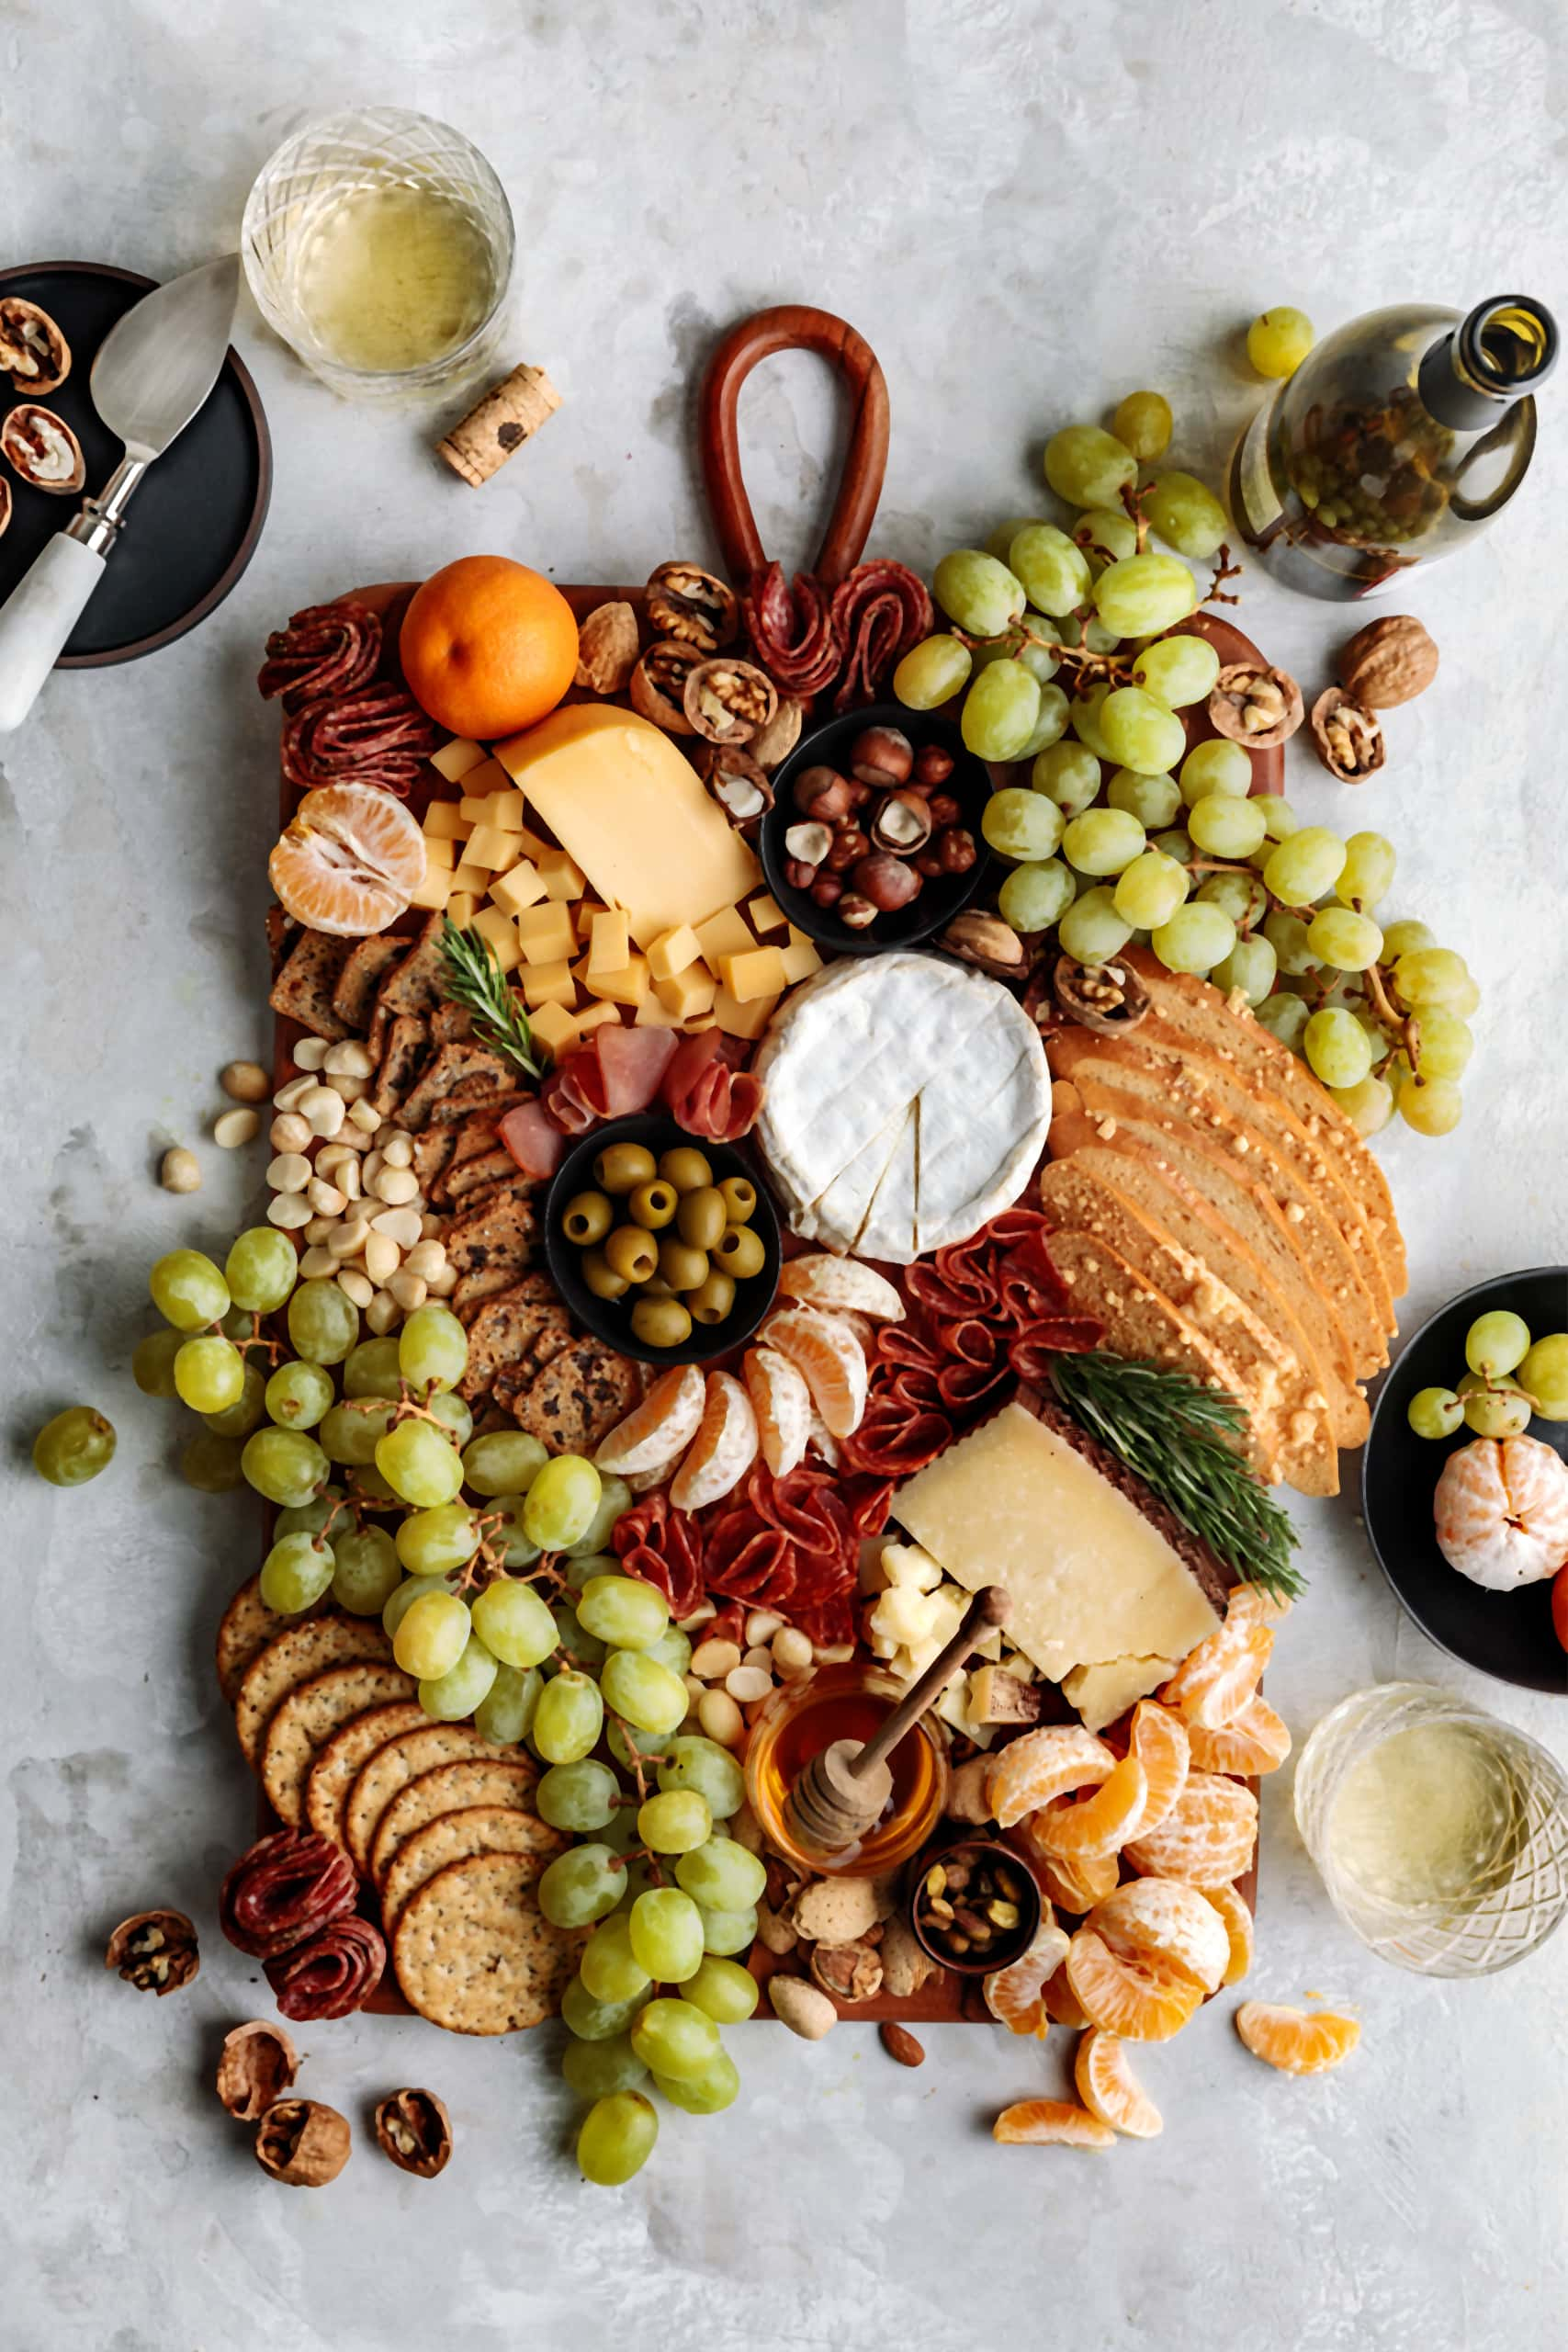 Easy and impressive Winter Cheese Board featuring seasonal fruits, nuts, olives and a variety of cheese and charcuterie.